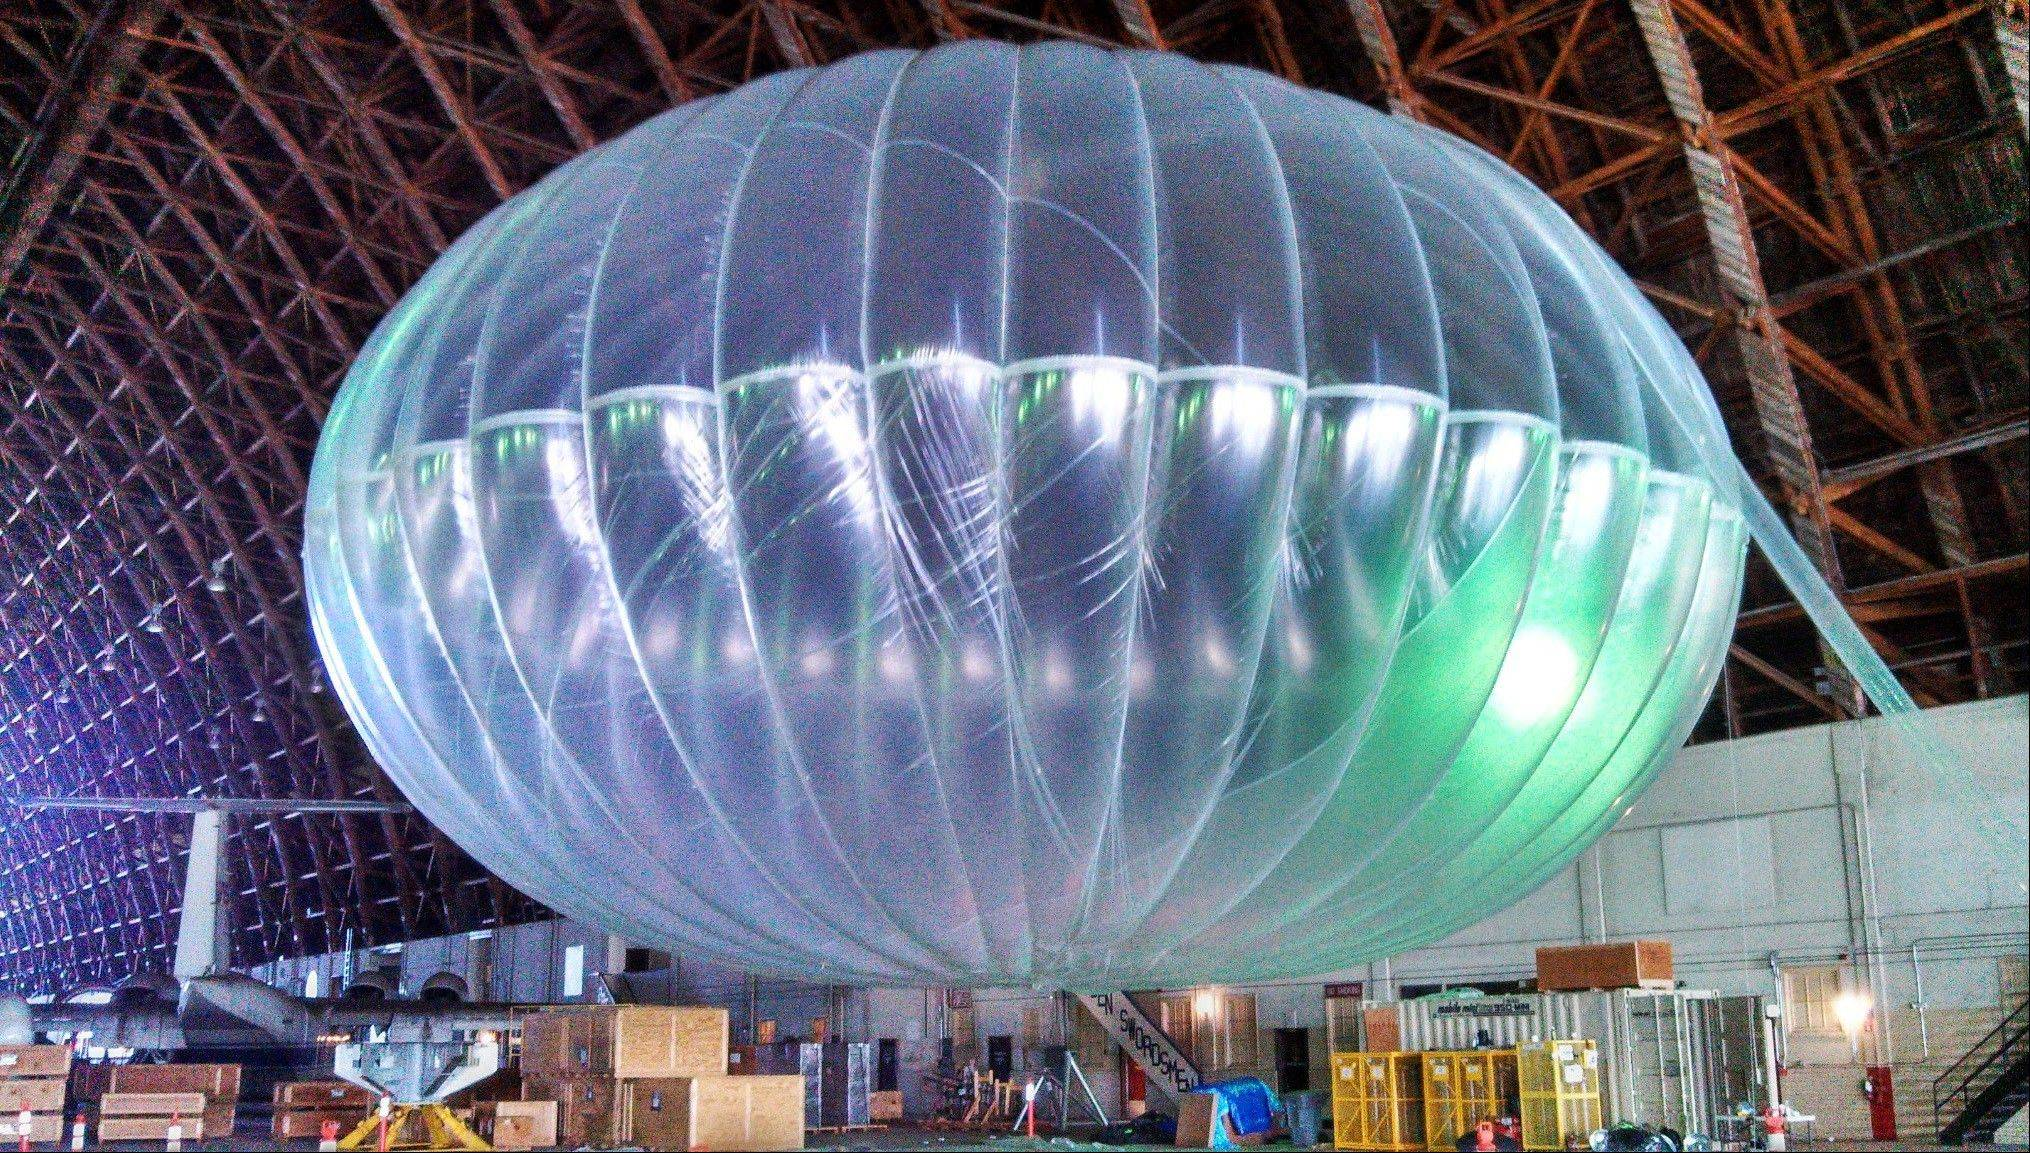 Associated Press/March 1, 2013A fully inflated test balloon sits in a hangar at Moffett Field airfield, Calif.